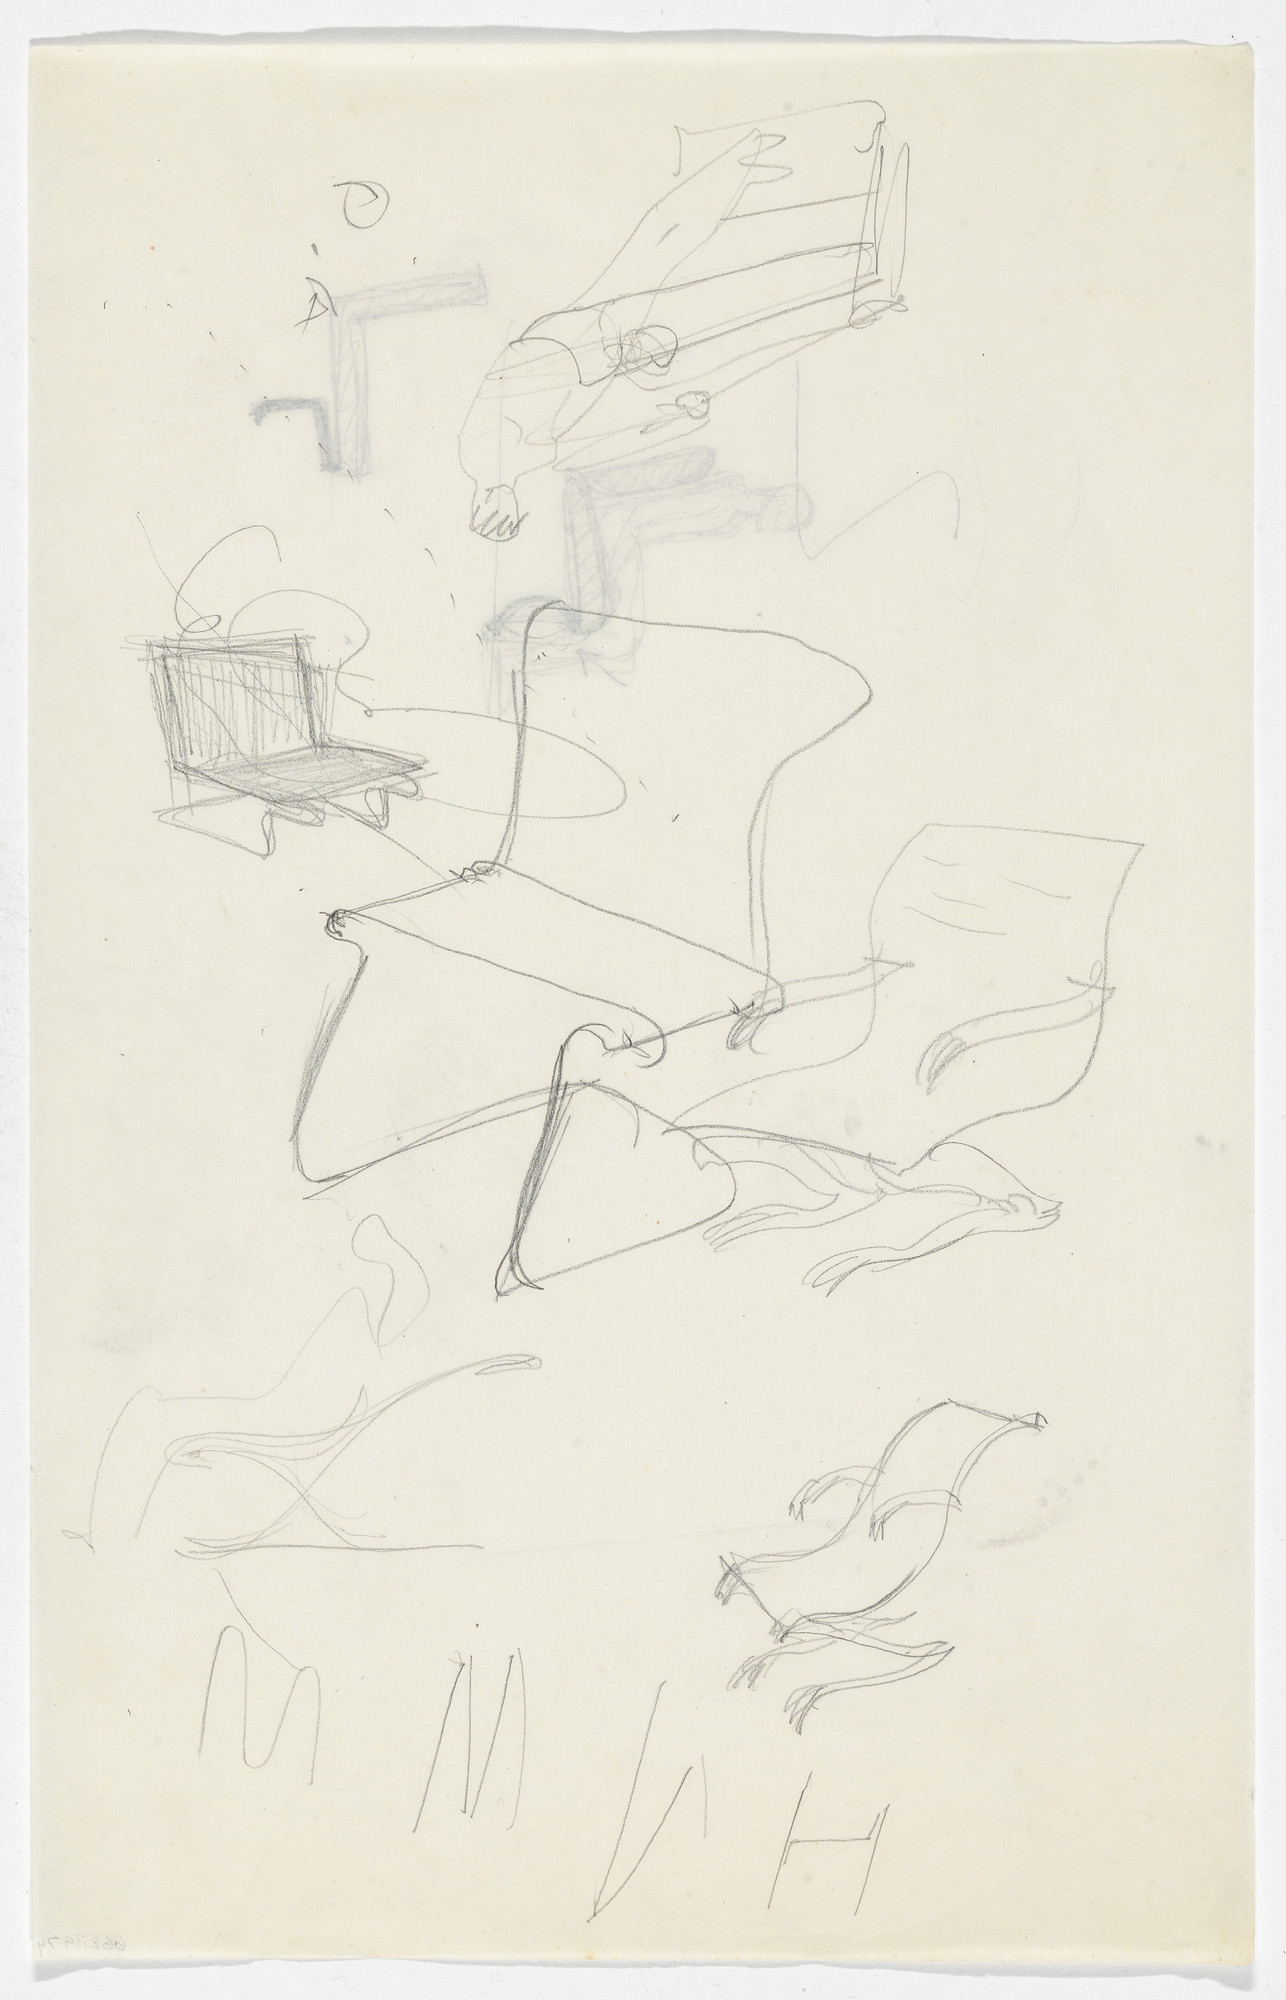 Ludwig Mies van der Rohe. Lounge Chair with and without Arms (recto and verso) (Perspective and elevation sketches). 1934